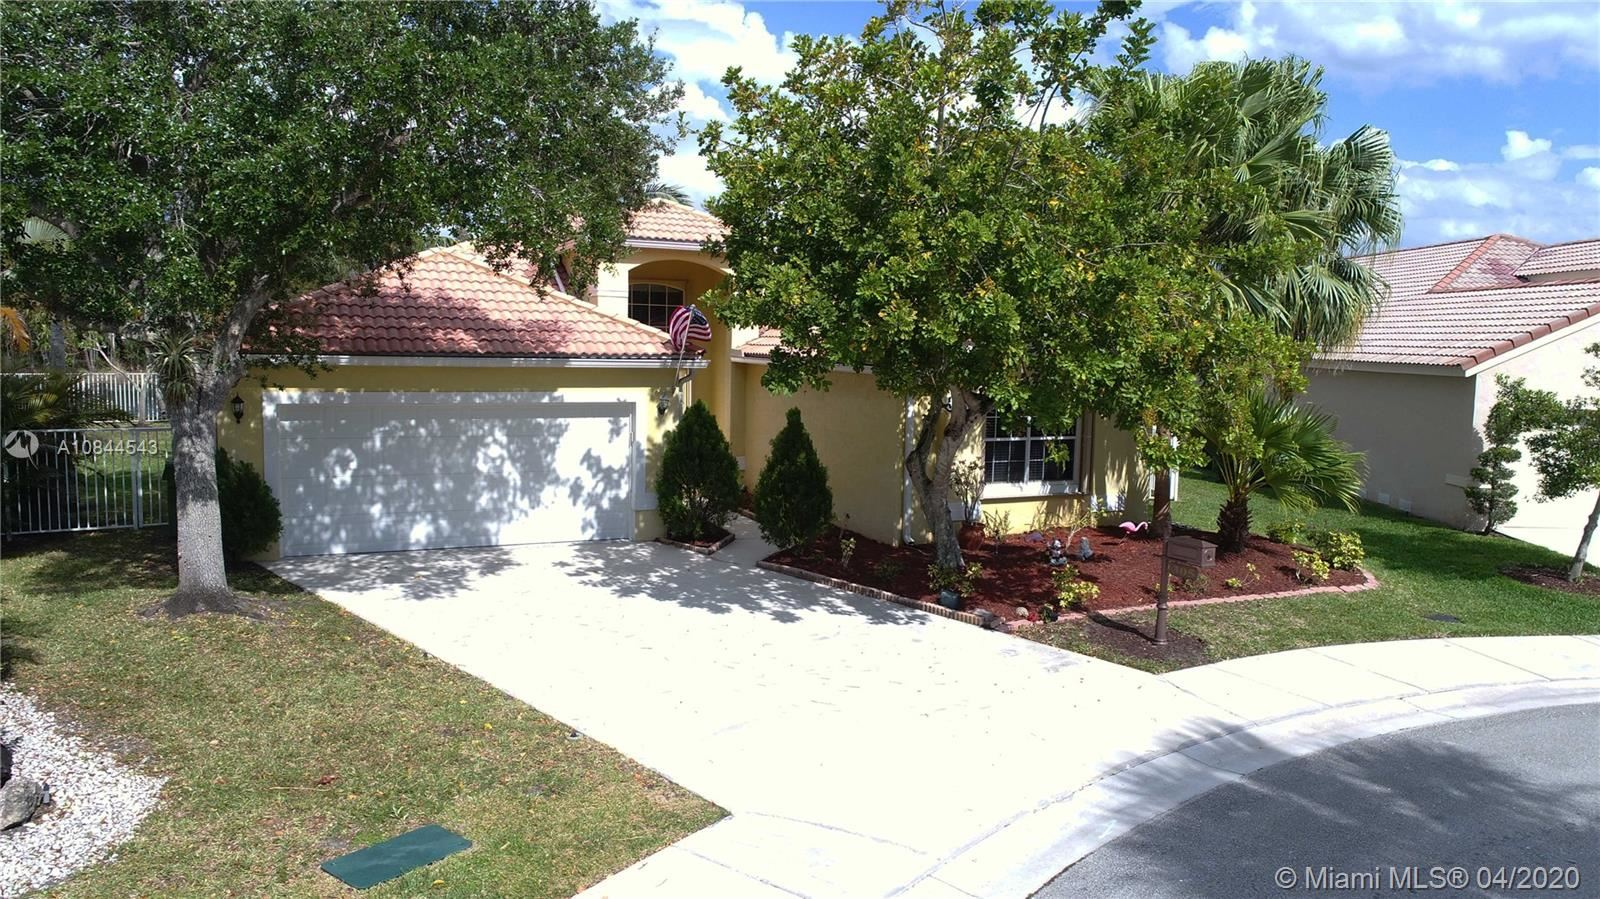 305 Lake Crest Ct, Weston, FL 33326 - #: A10844543